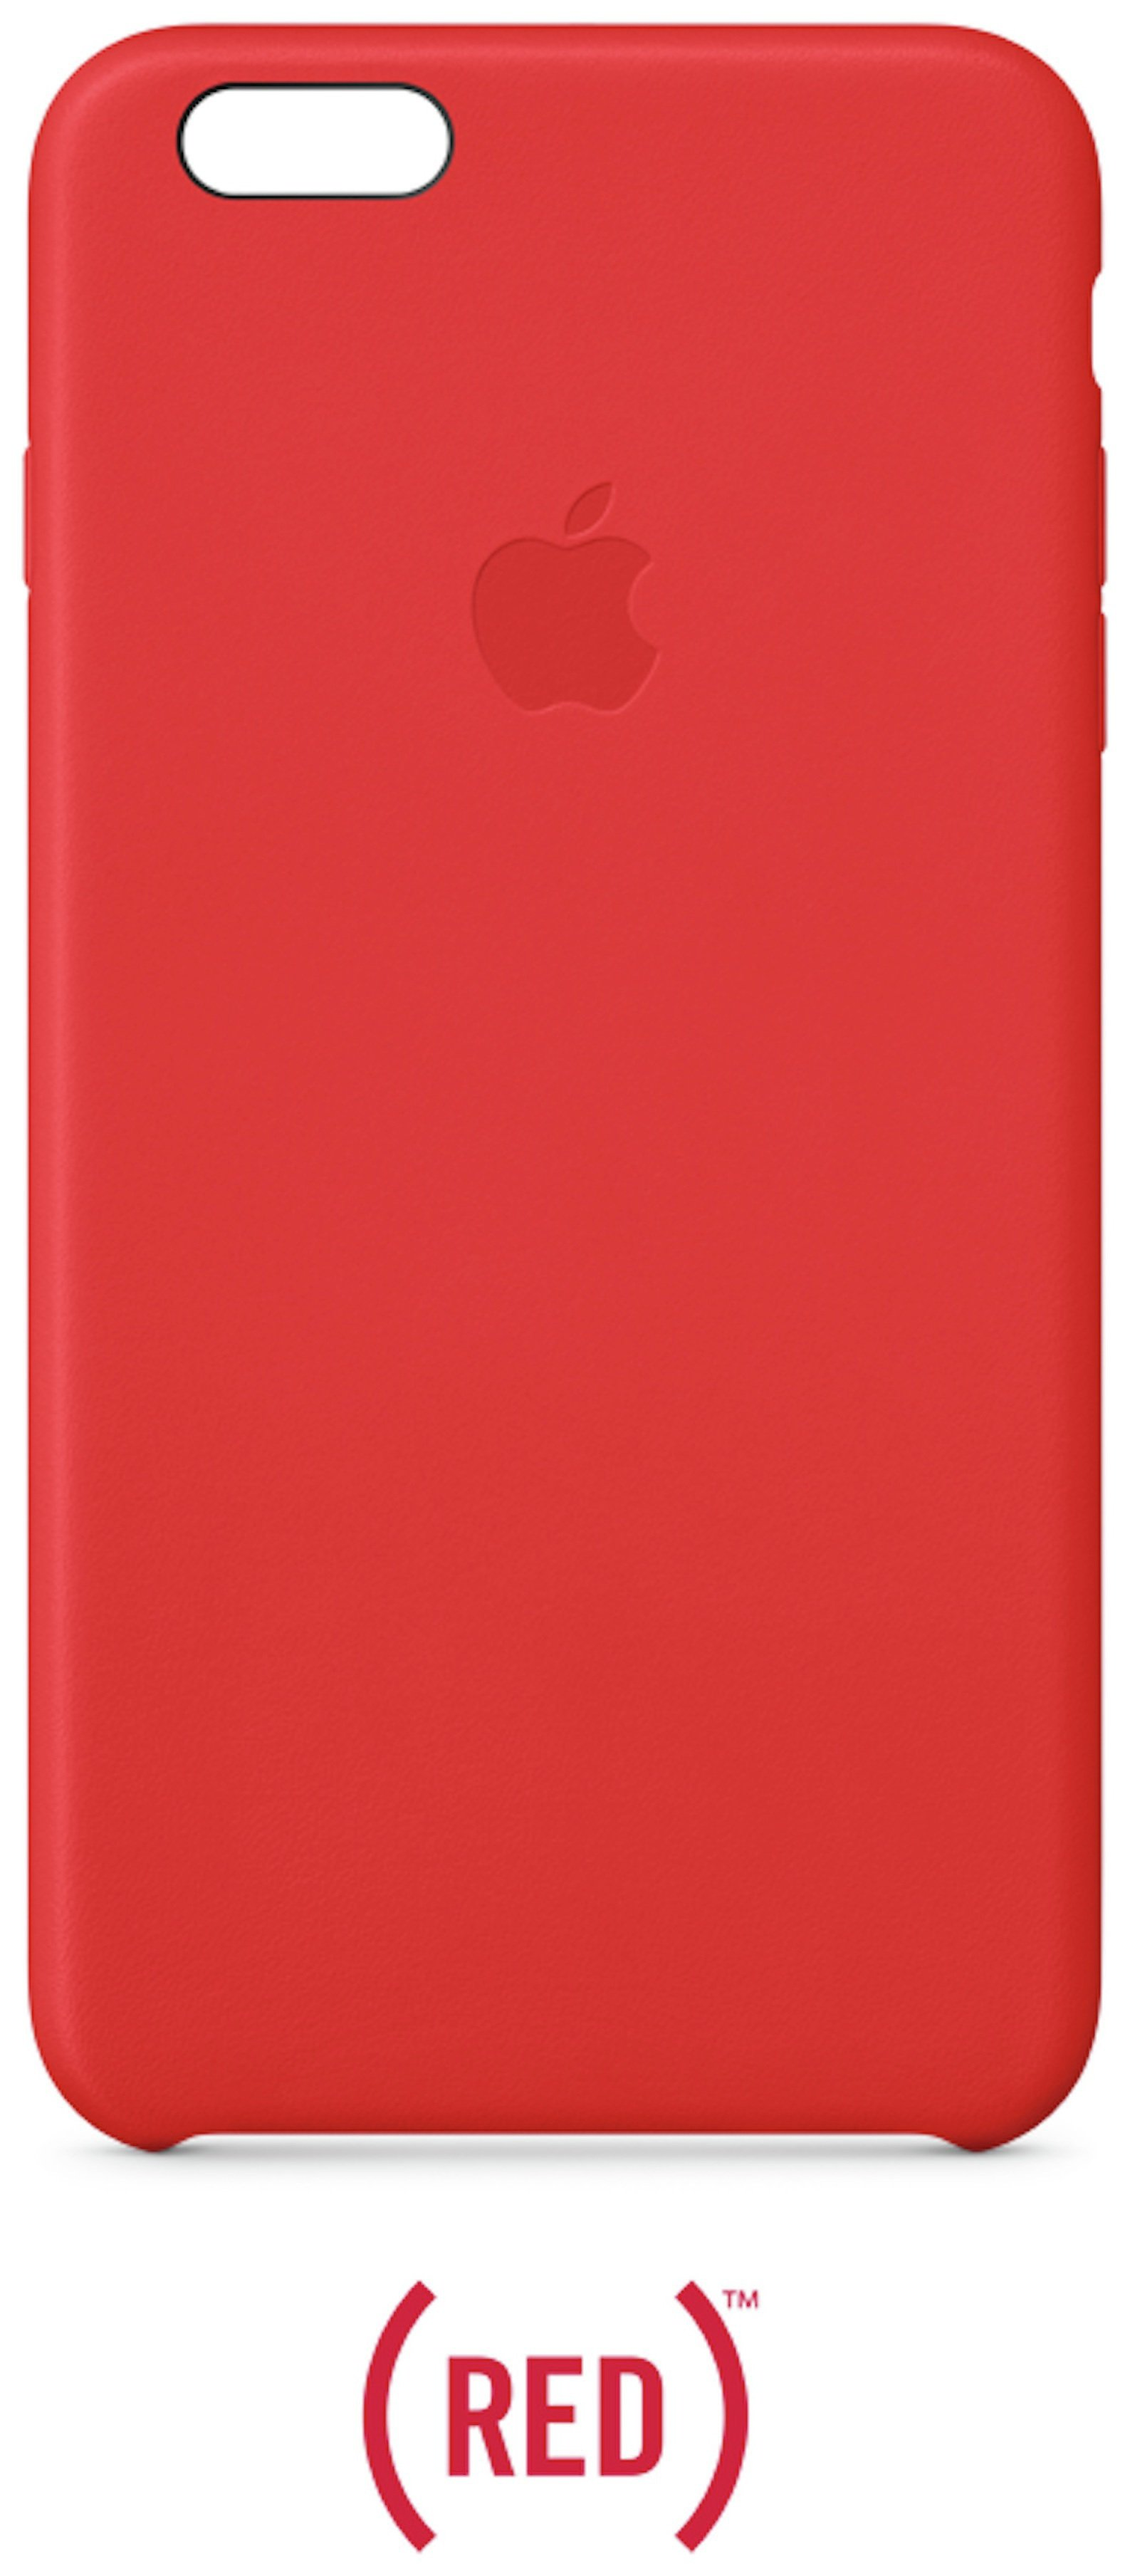 Apple iPhone 6 Plus Leather Case - Red.